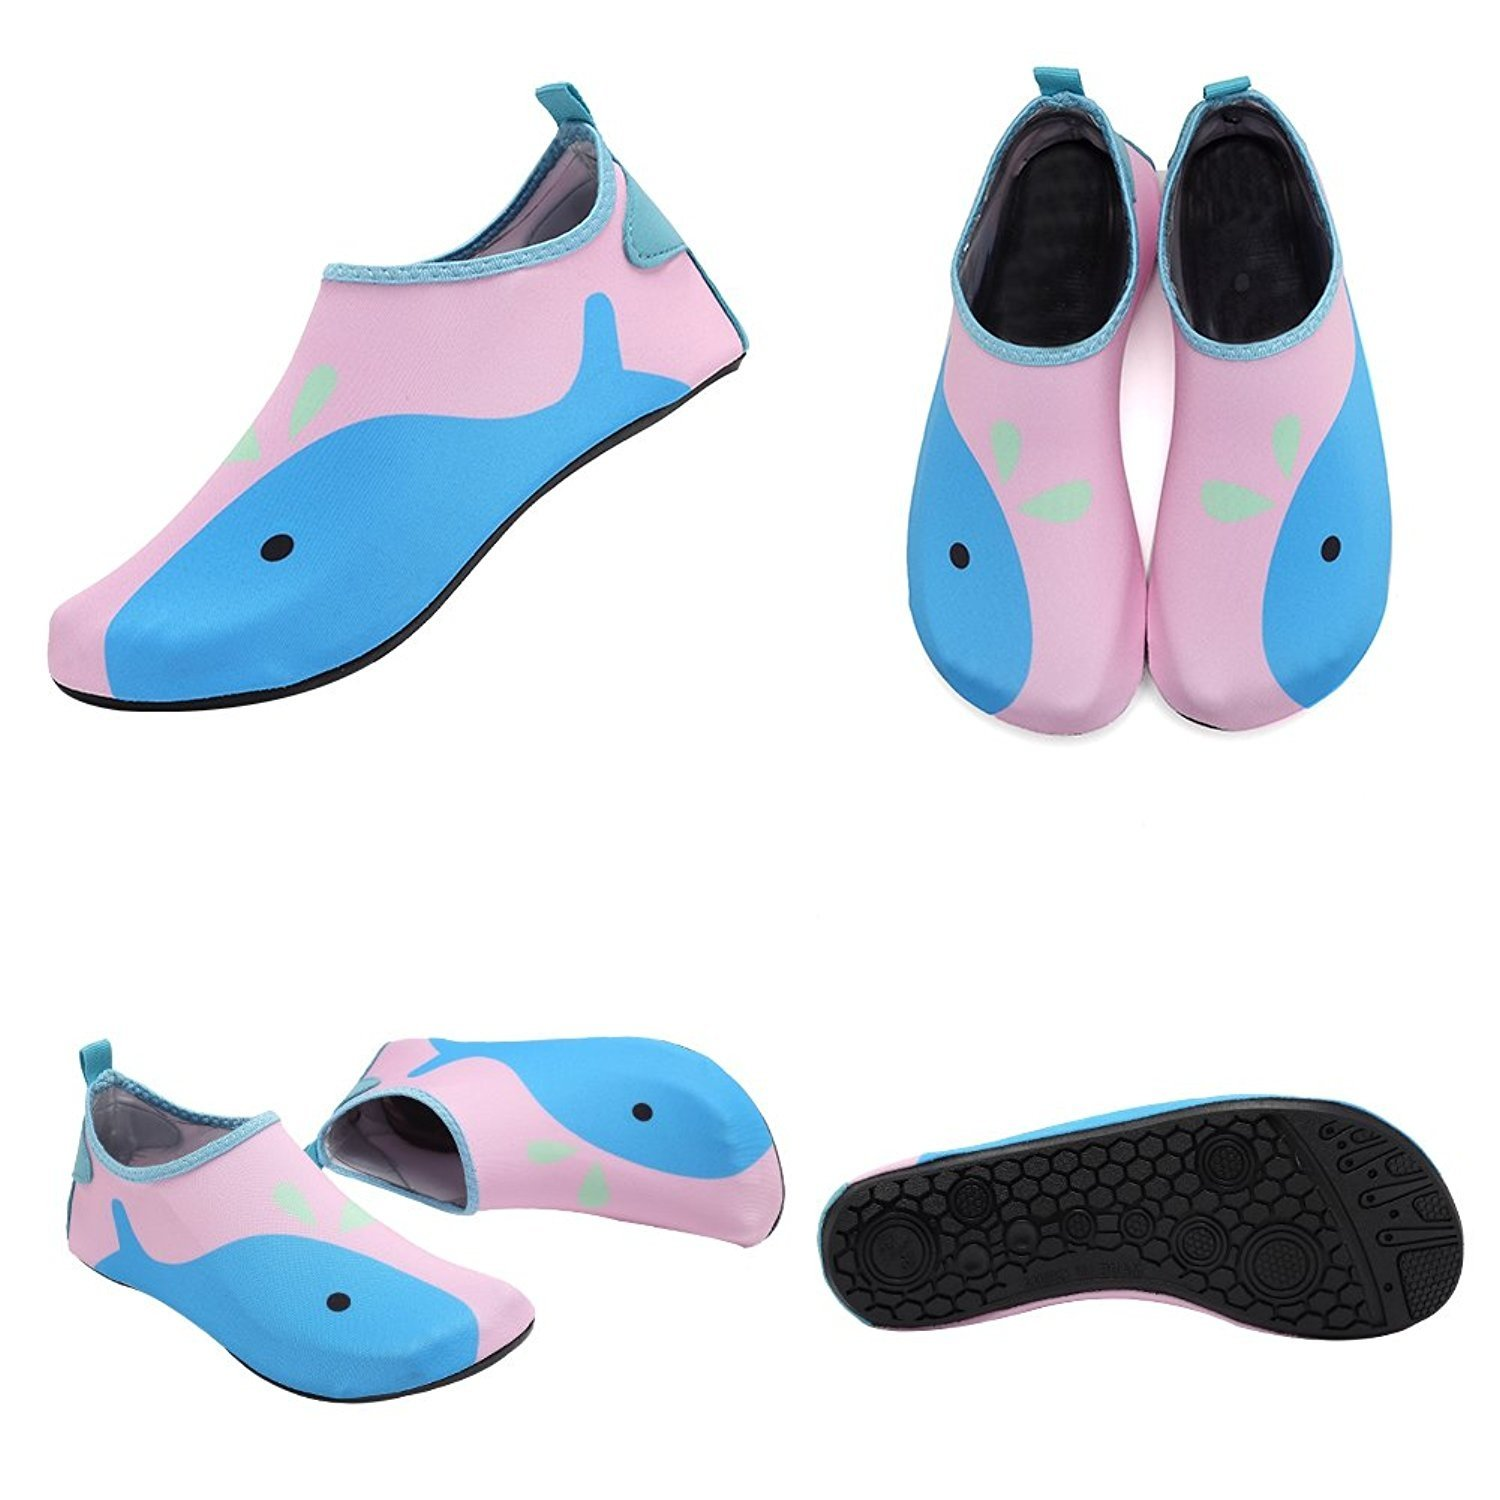 CIOR Kids Skin Barefoot Shoes Quick-Dry Water Shoes Mutifunctional Aqua Socks for Beach Pool Surf Shoes